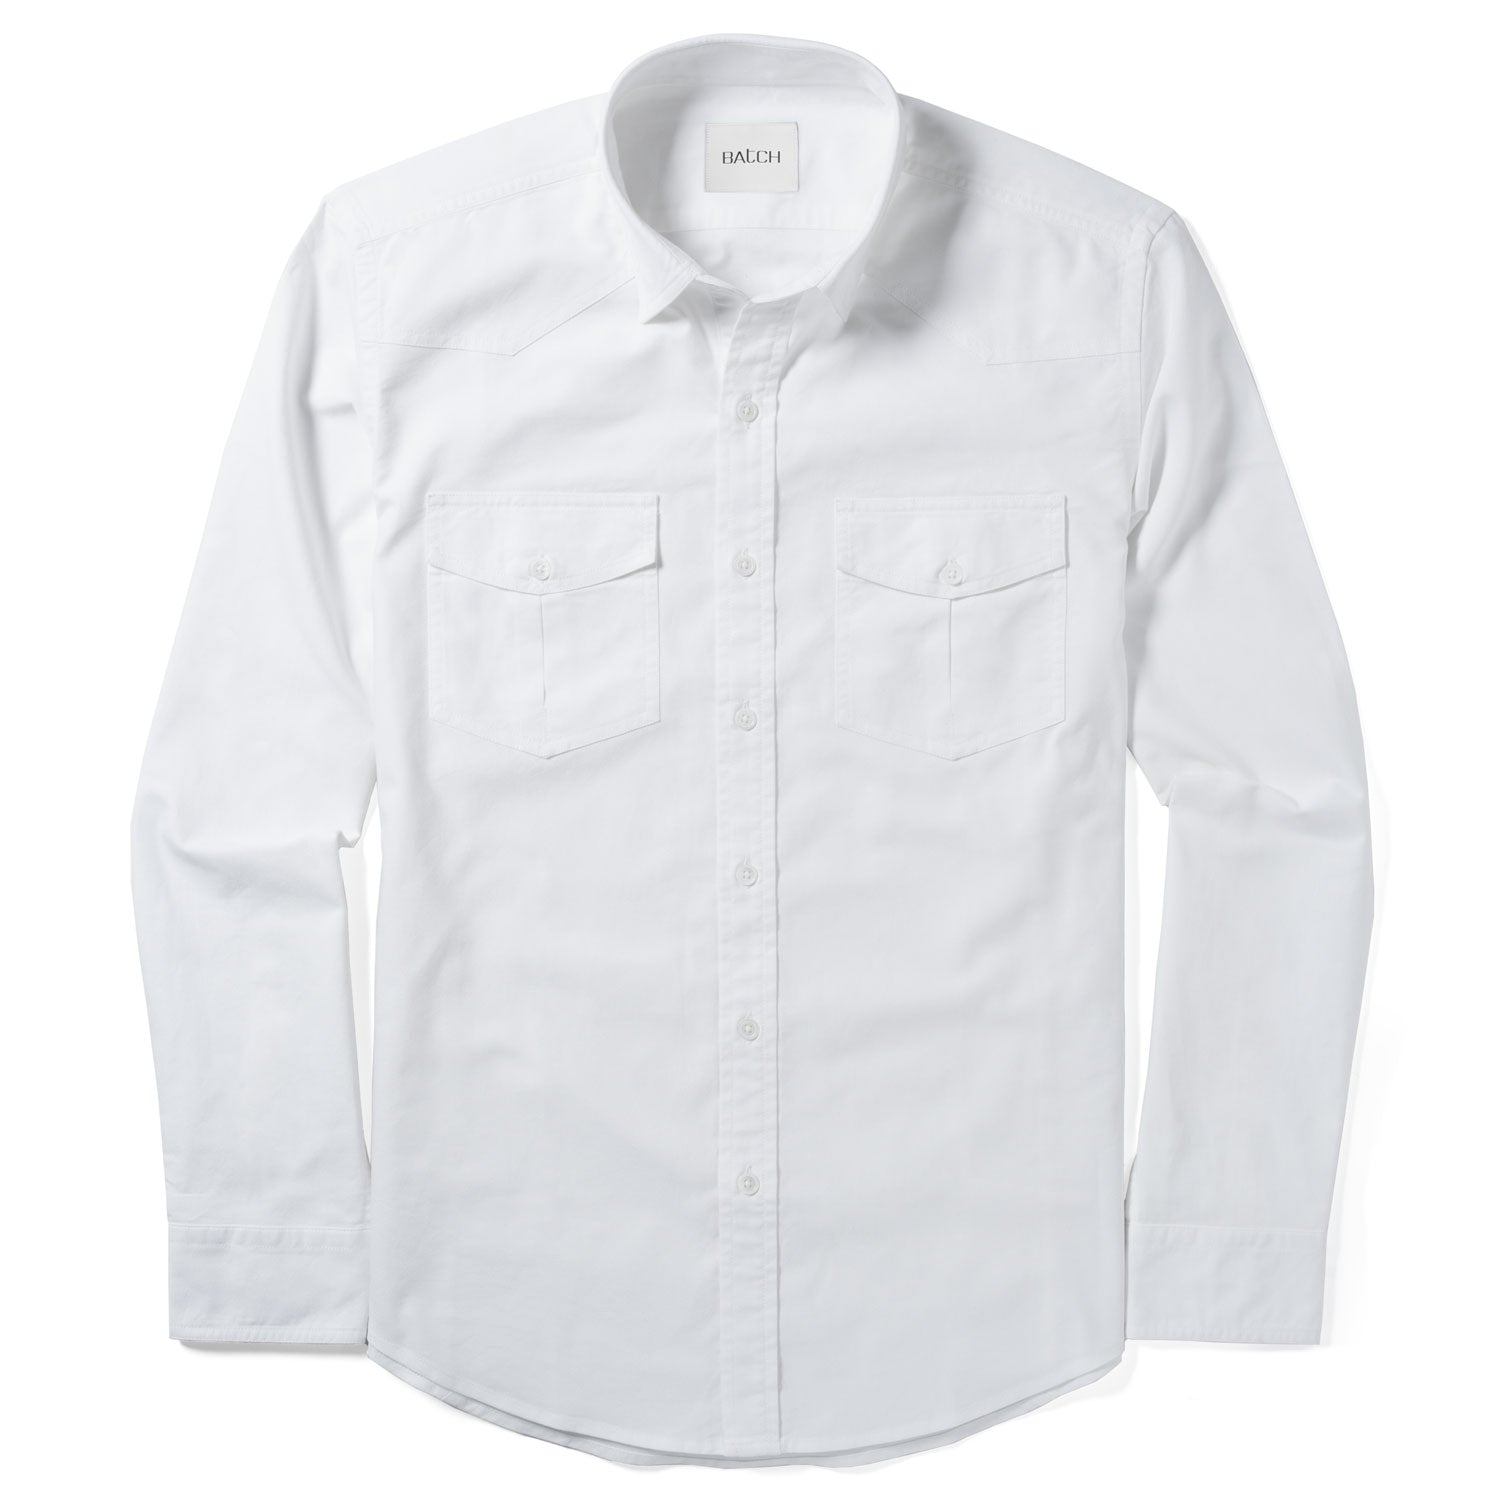 Maker Work Shirt – Clean White Cotton Oxford